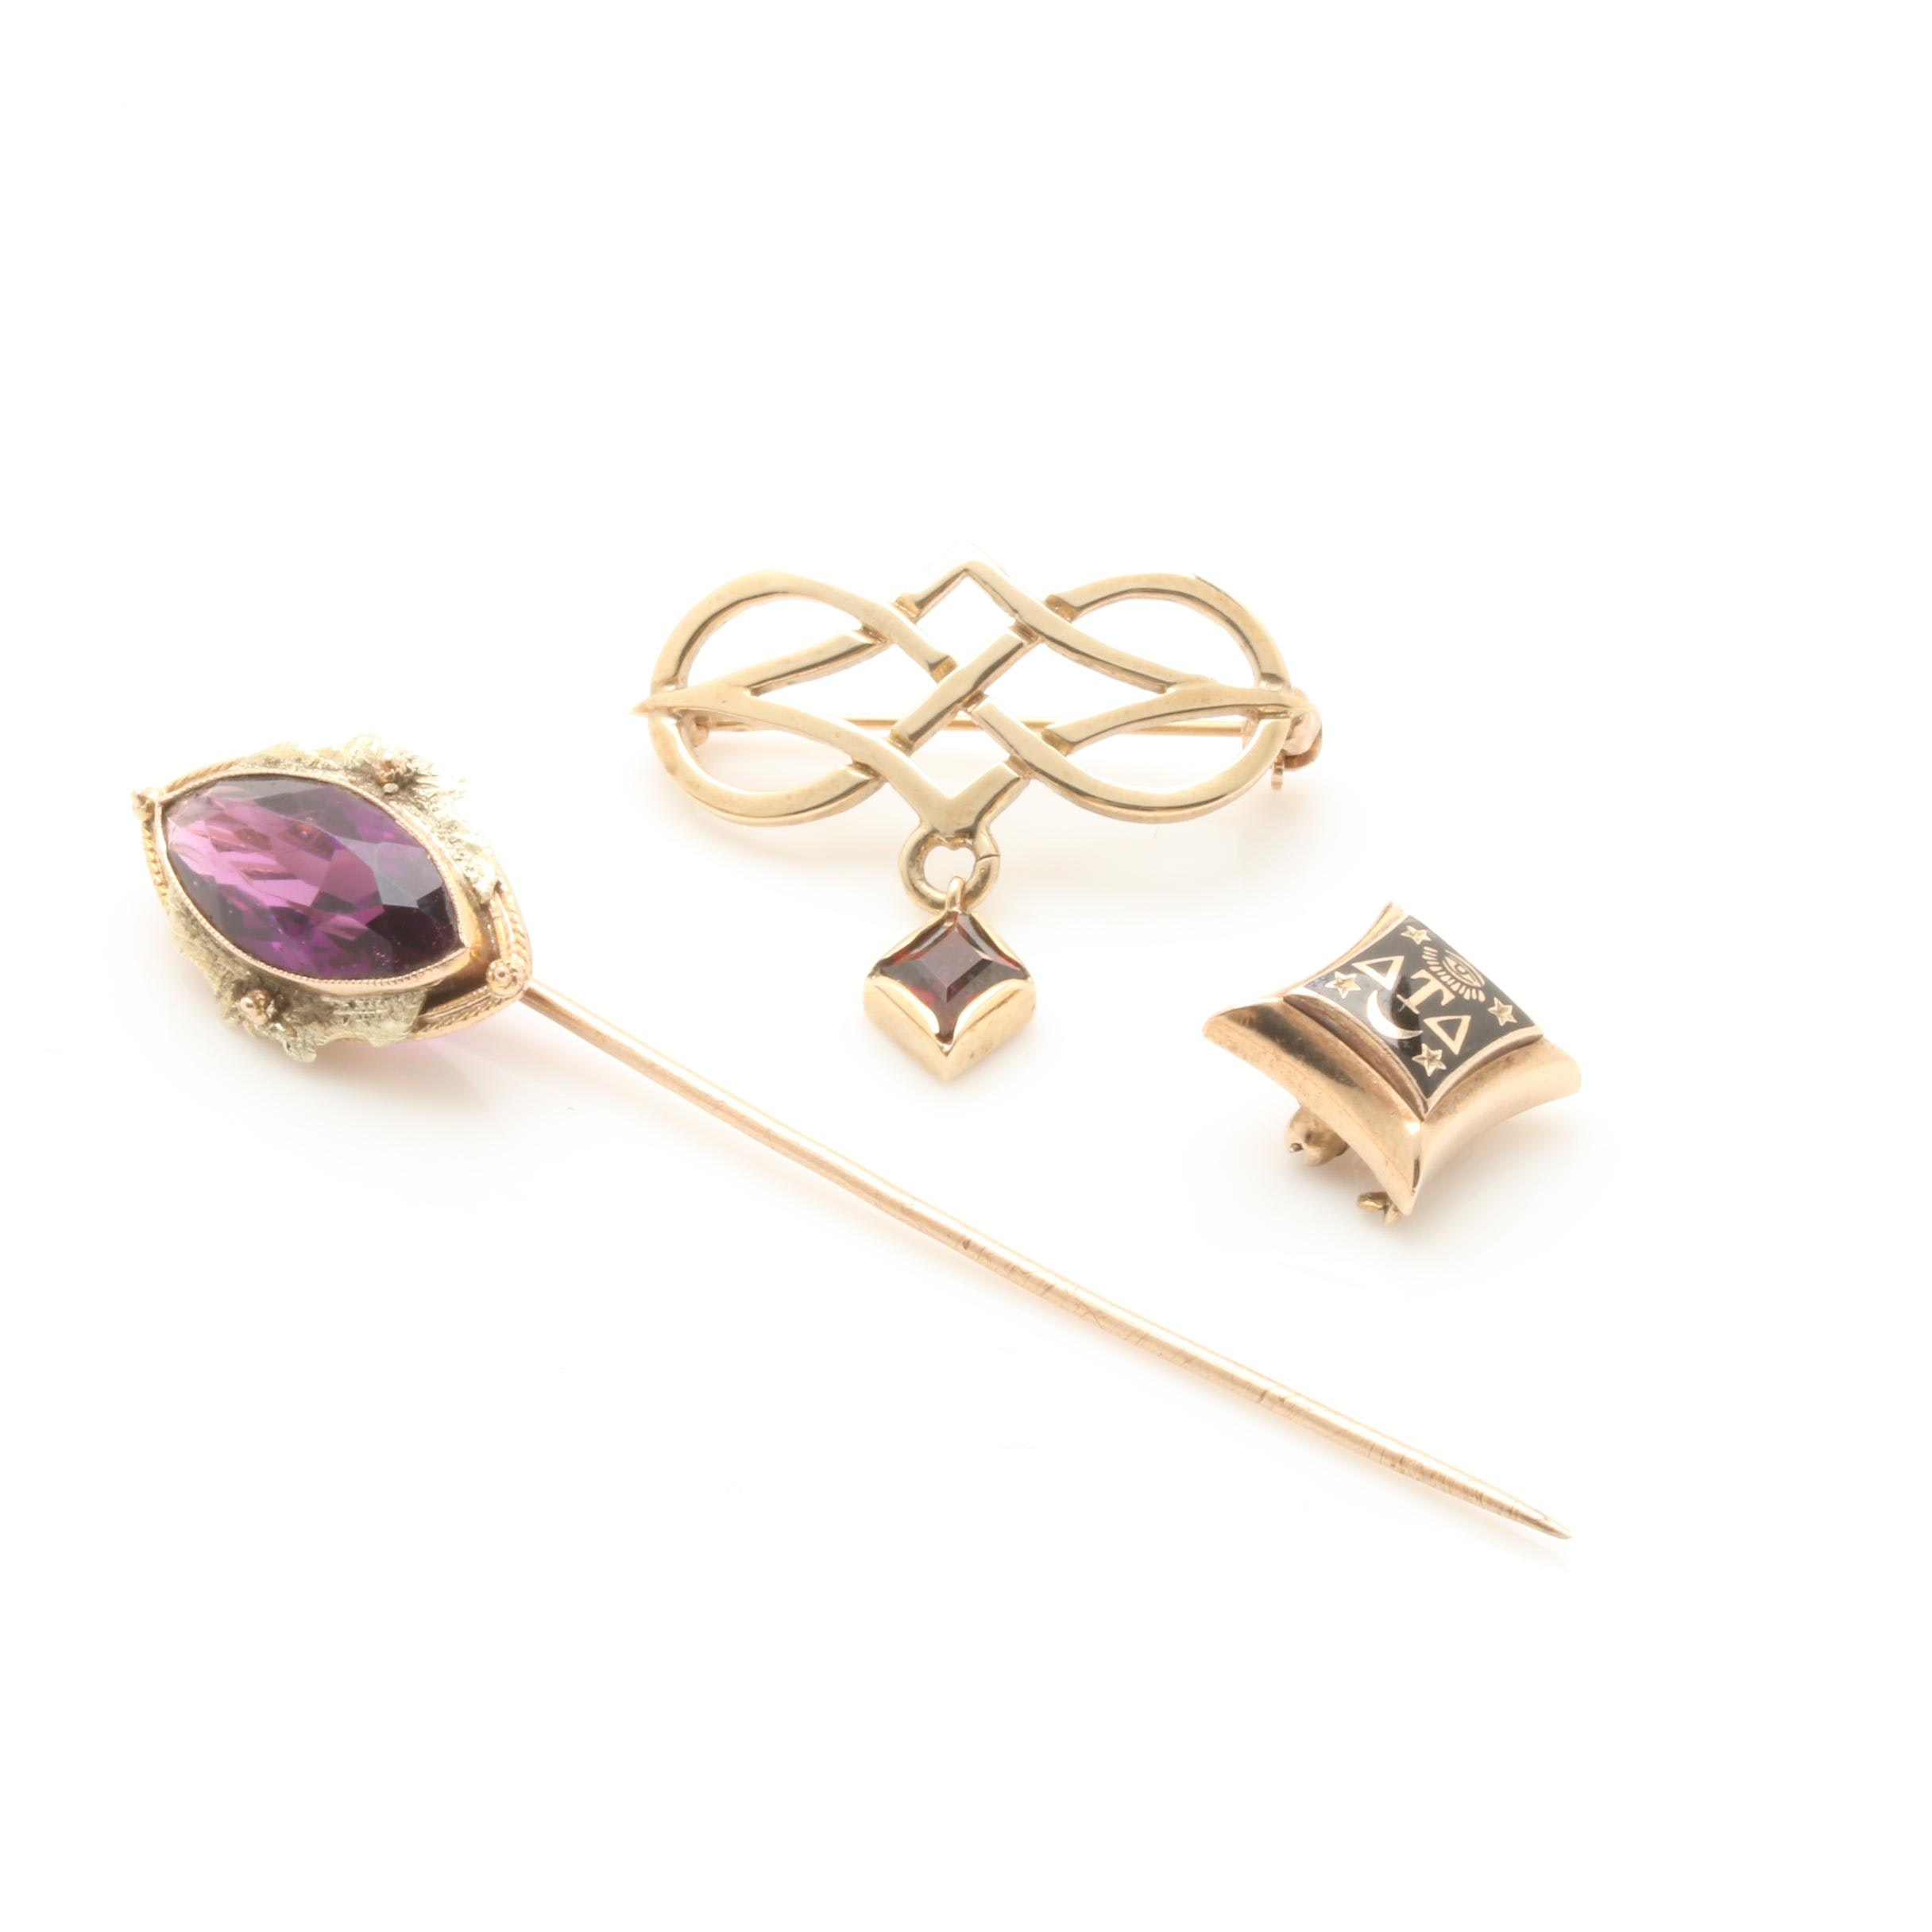 Vintage 10K Yellow Gold Lapel Pin, Stickpin and 9K Yellow Gold Brooch